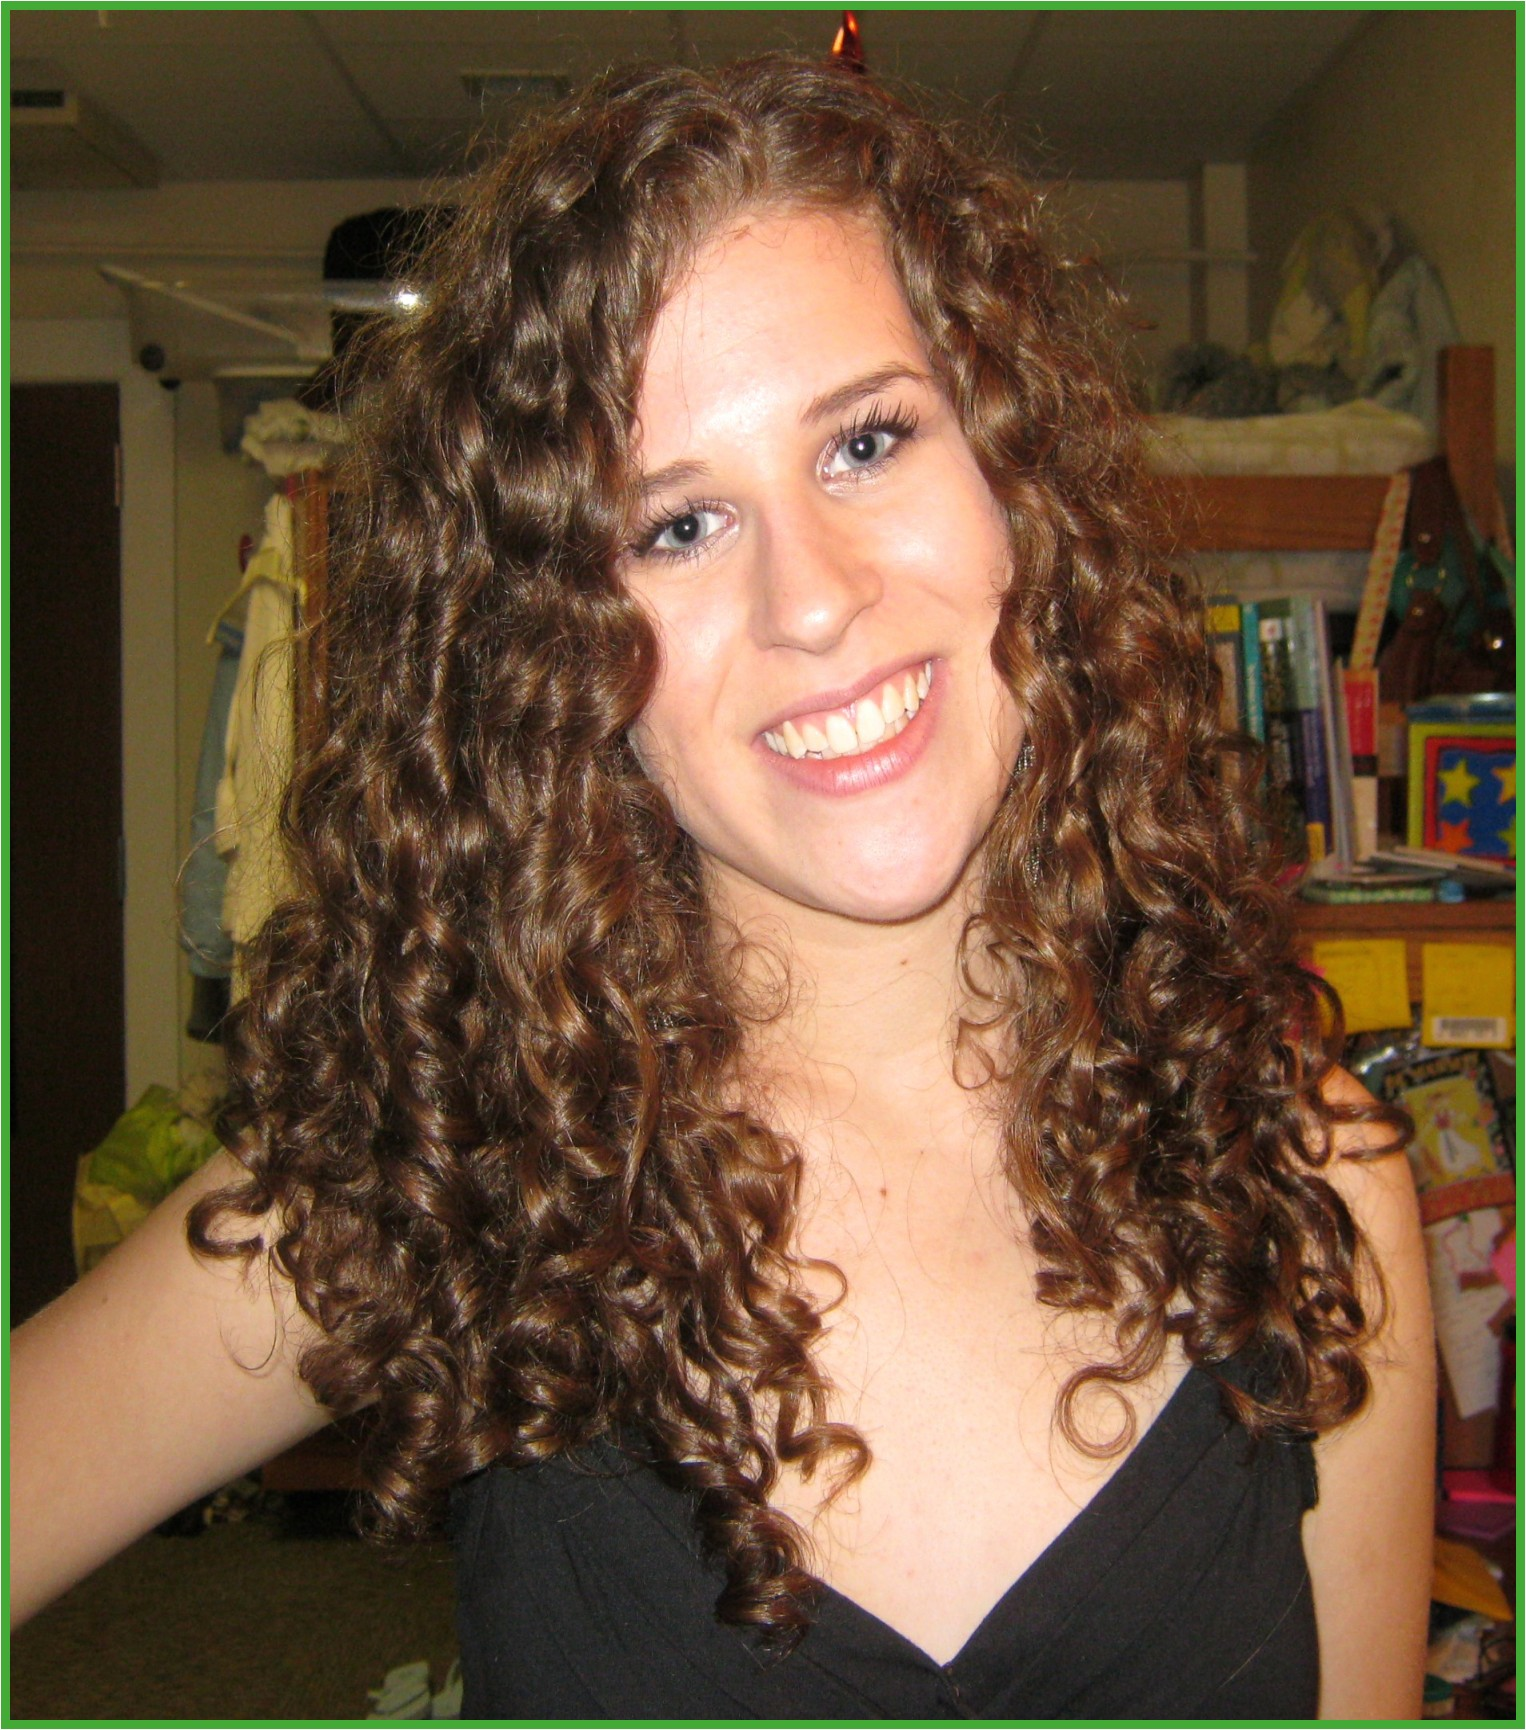 Long Hairstyles for Girls Hairstyle Long Hair Lovely Very Curly Hairstyles Fresh Curly Hair 0d